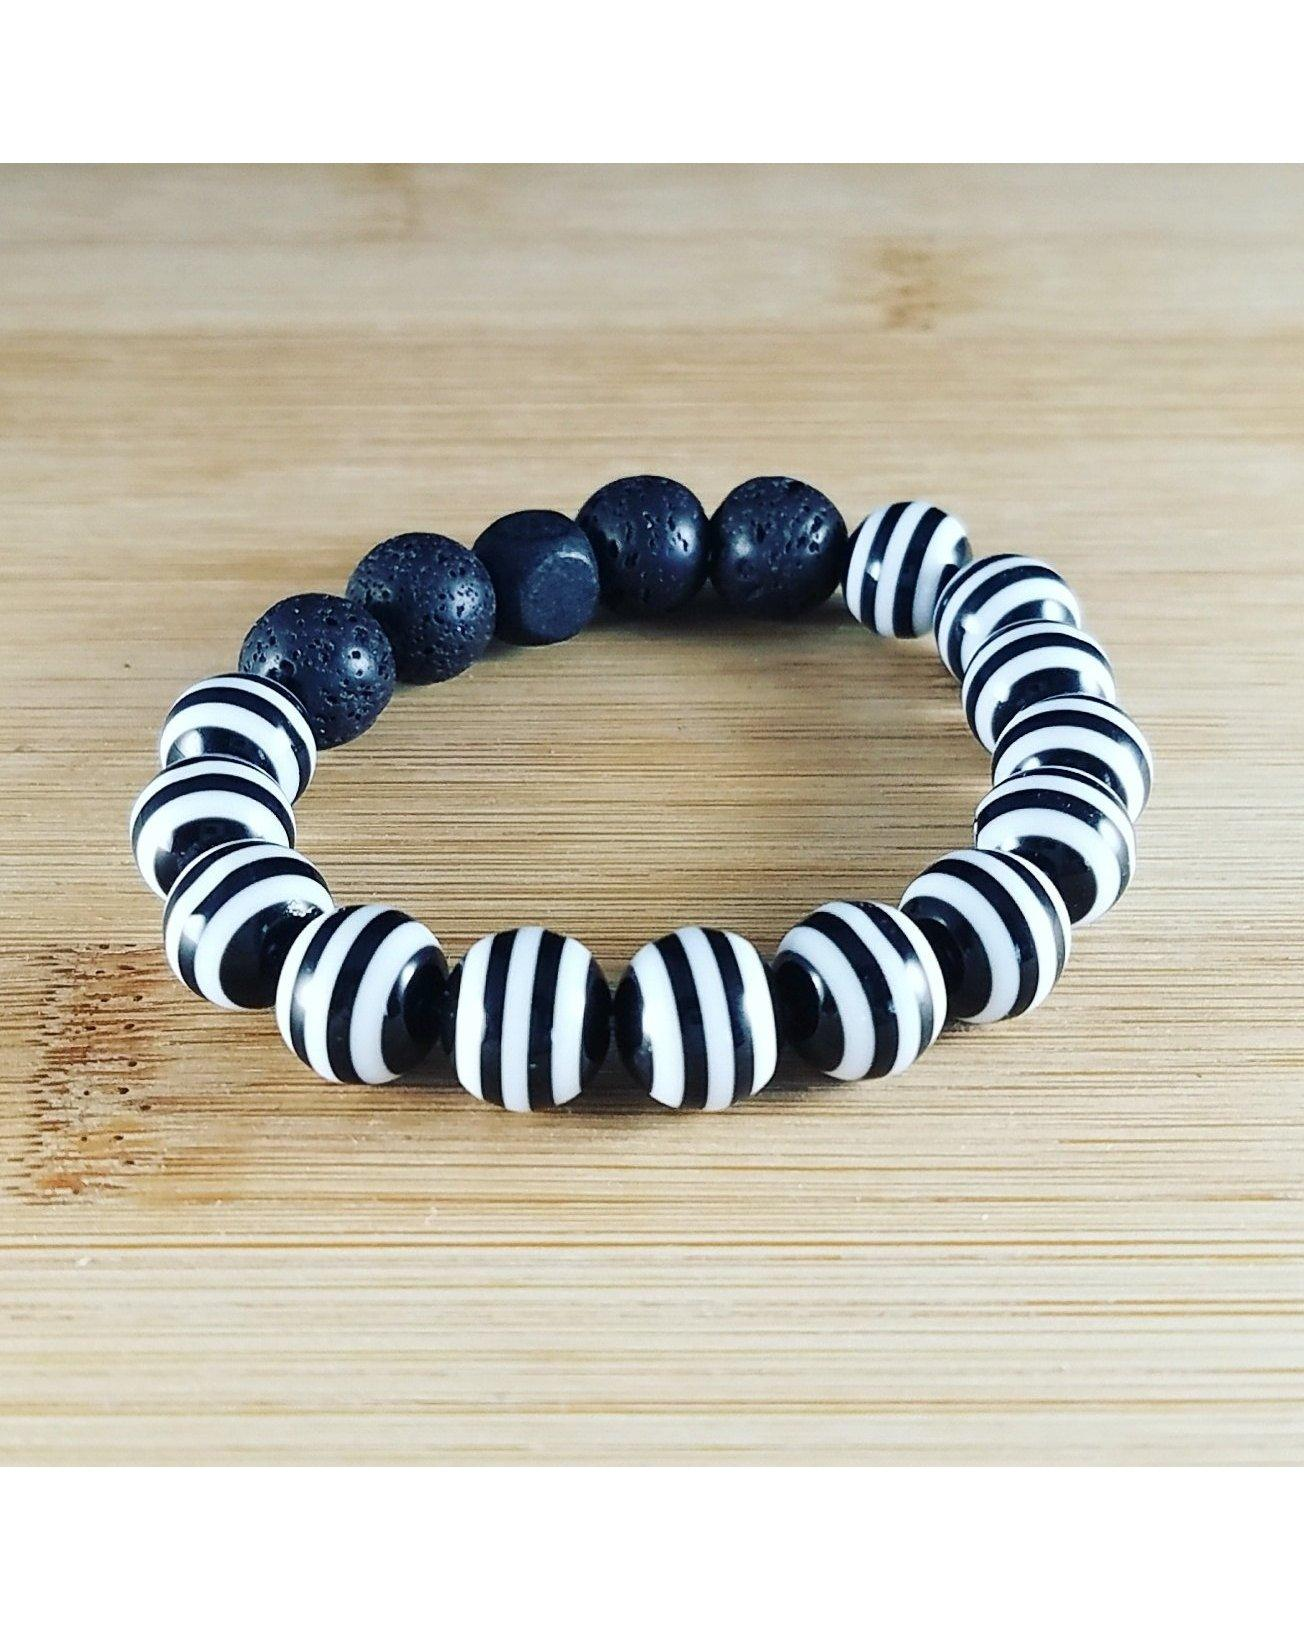 Girls/Kids/Boys Black and White Striped and Lava Rock 10mm Bead Essential Oil Aromatherapy Diffuser Stretch Bracelet K032 - Essentially Elegant